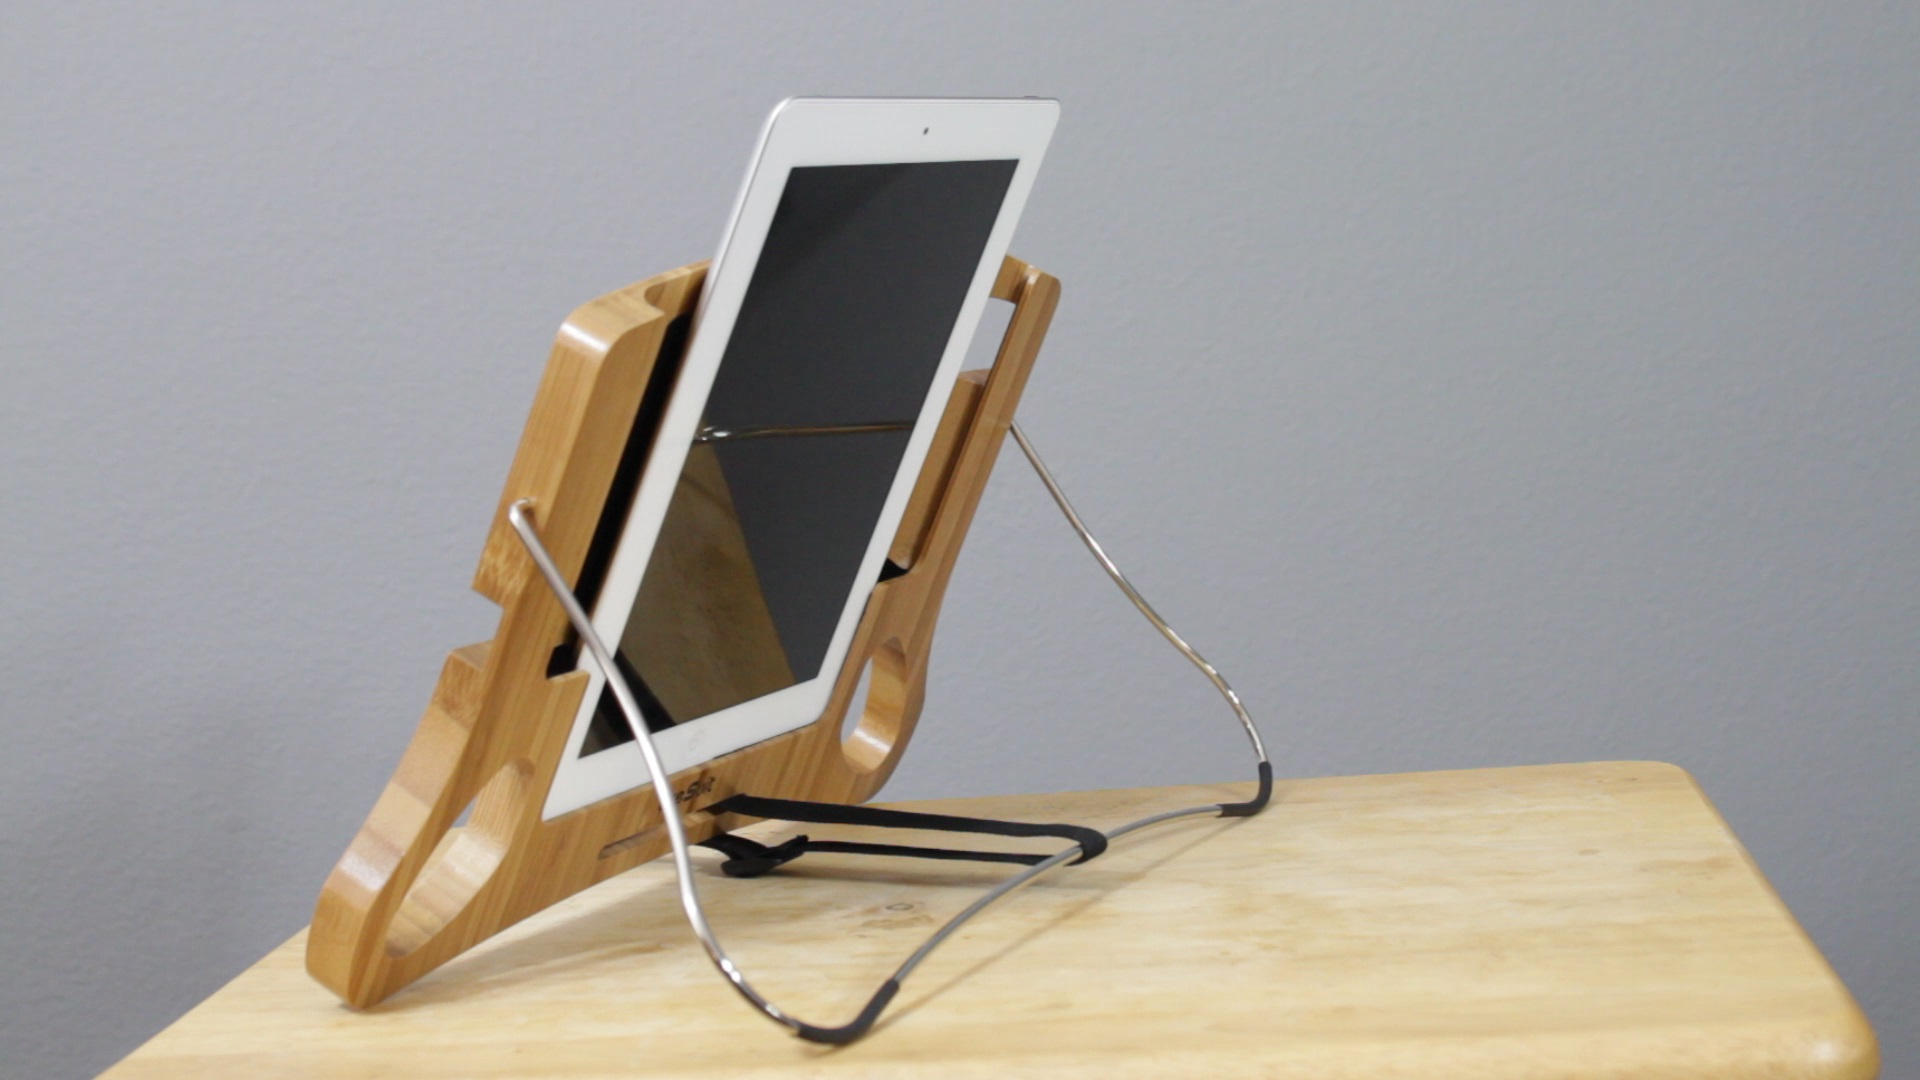 Video Review DreSuit S Bamboo Bed Stand For IPad Some